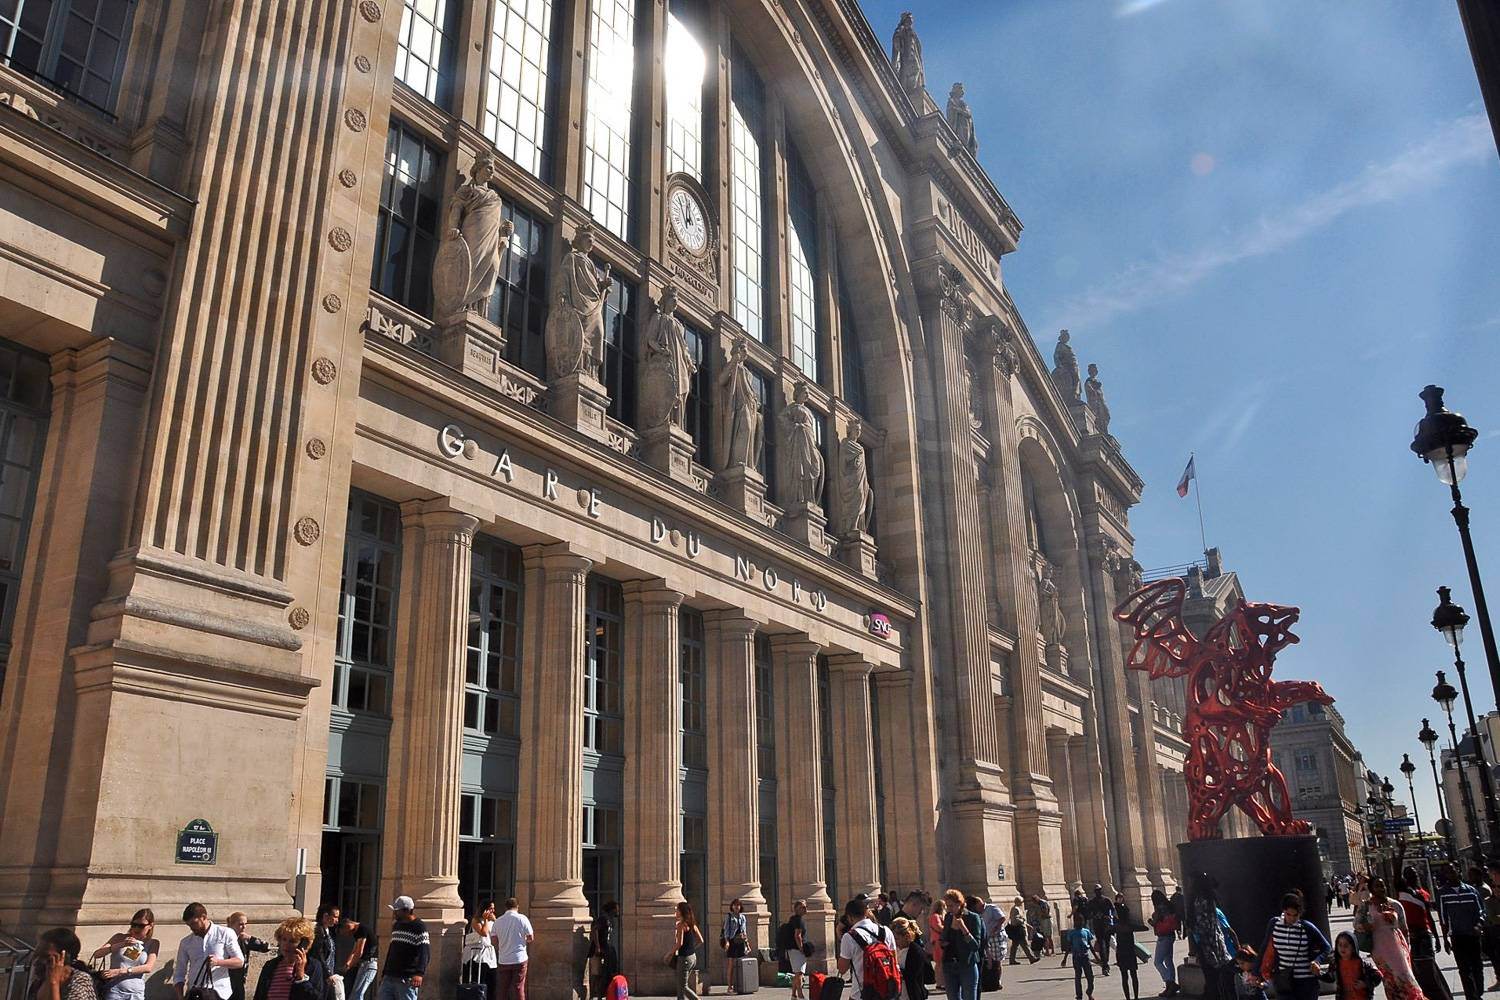 Image of façade of Gare du Nord in Paris with pedestrians outside.